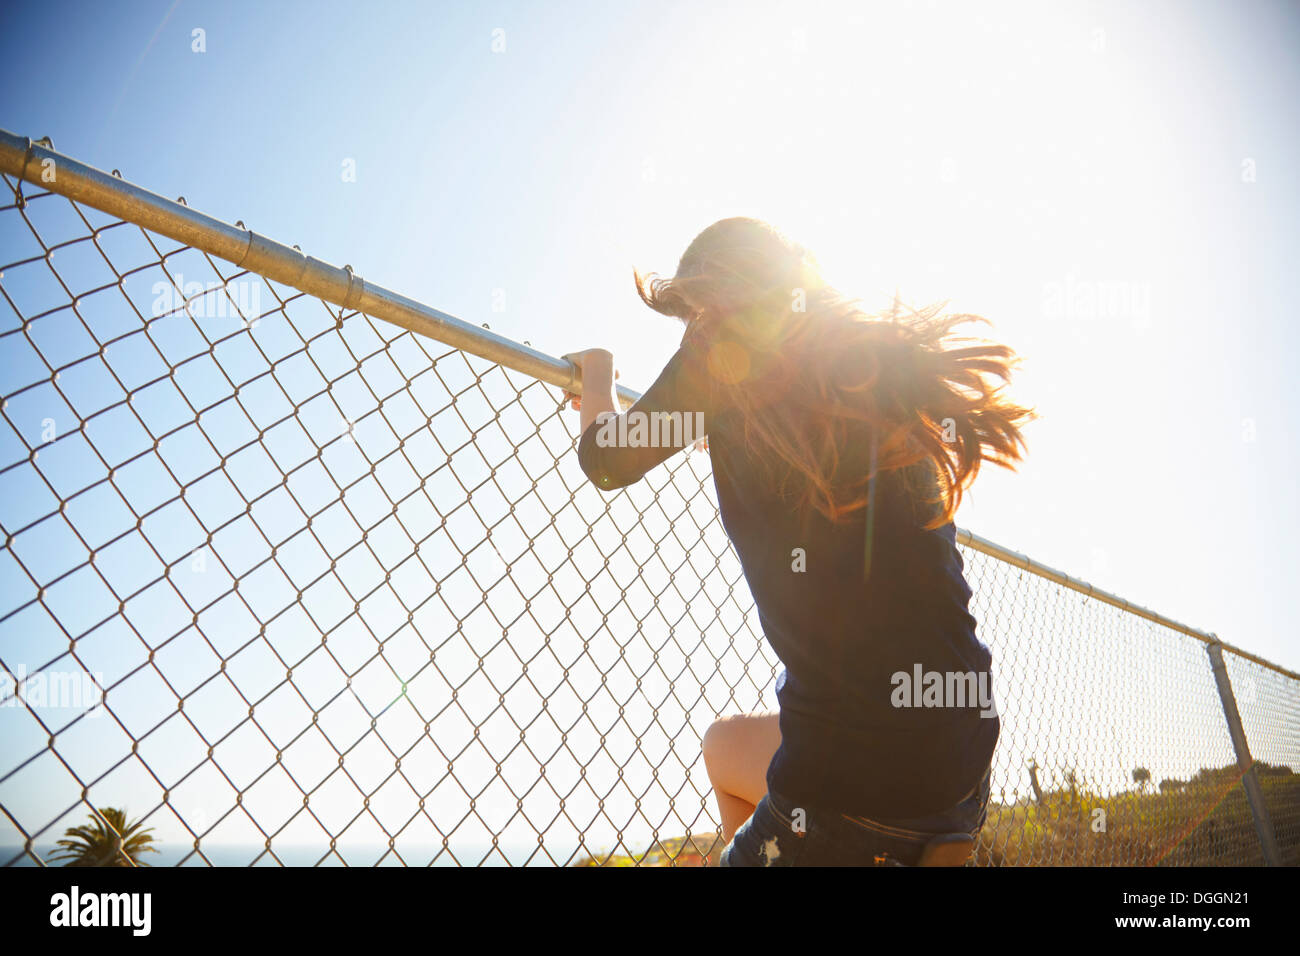 Young woman messing about on wire fence - Stock Image